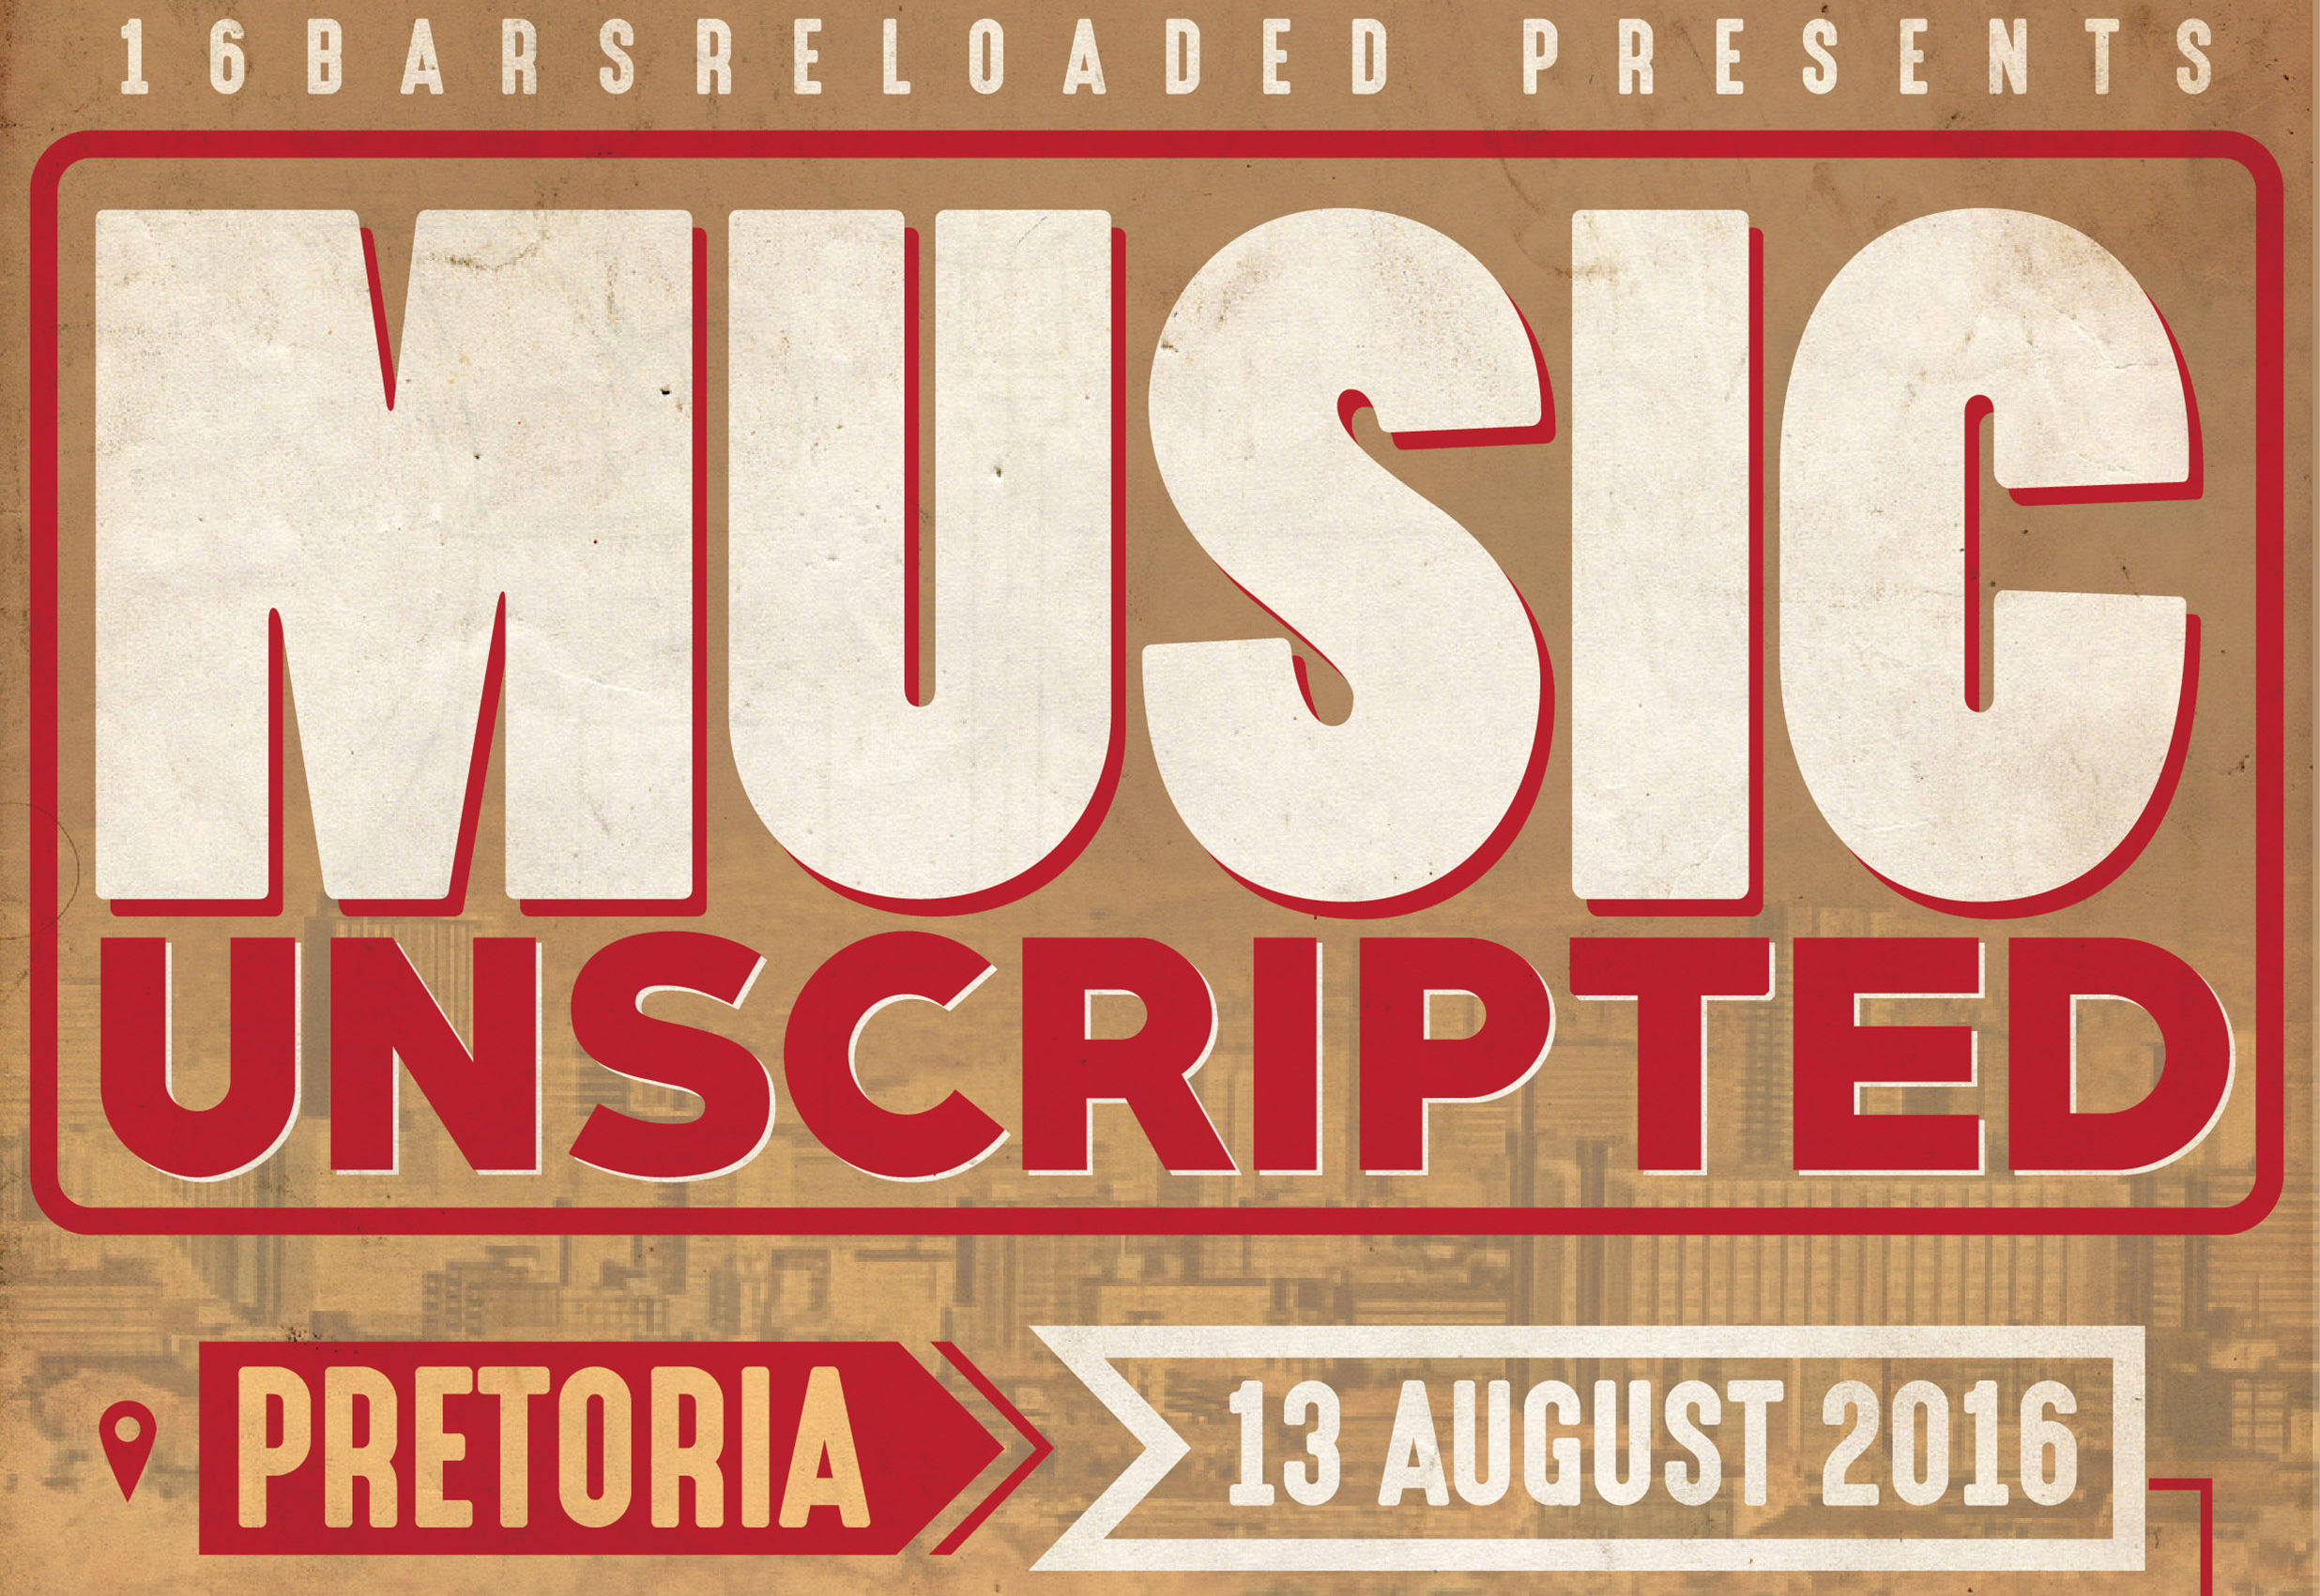 #16BarsRELOADED Presents: Music Unscripted Conference MU POSTER e1469104957161